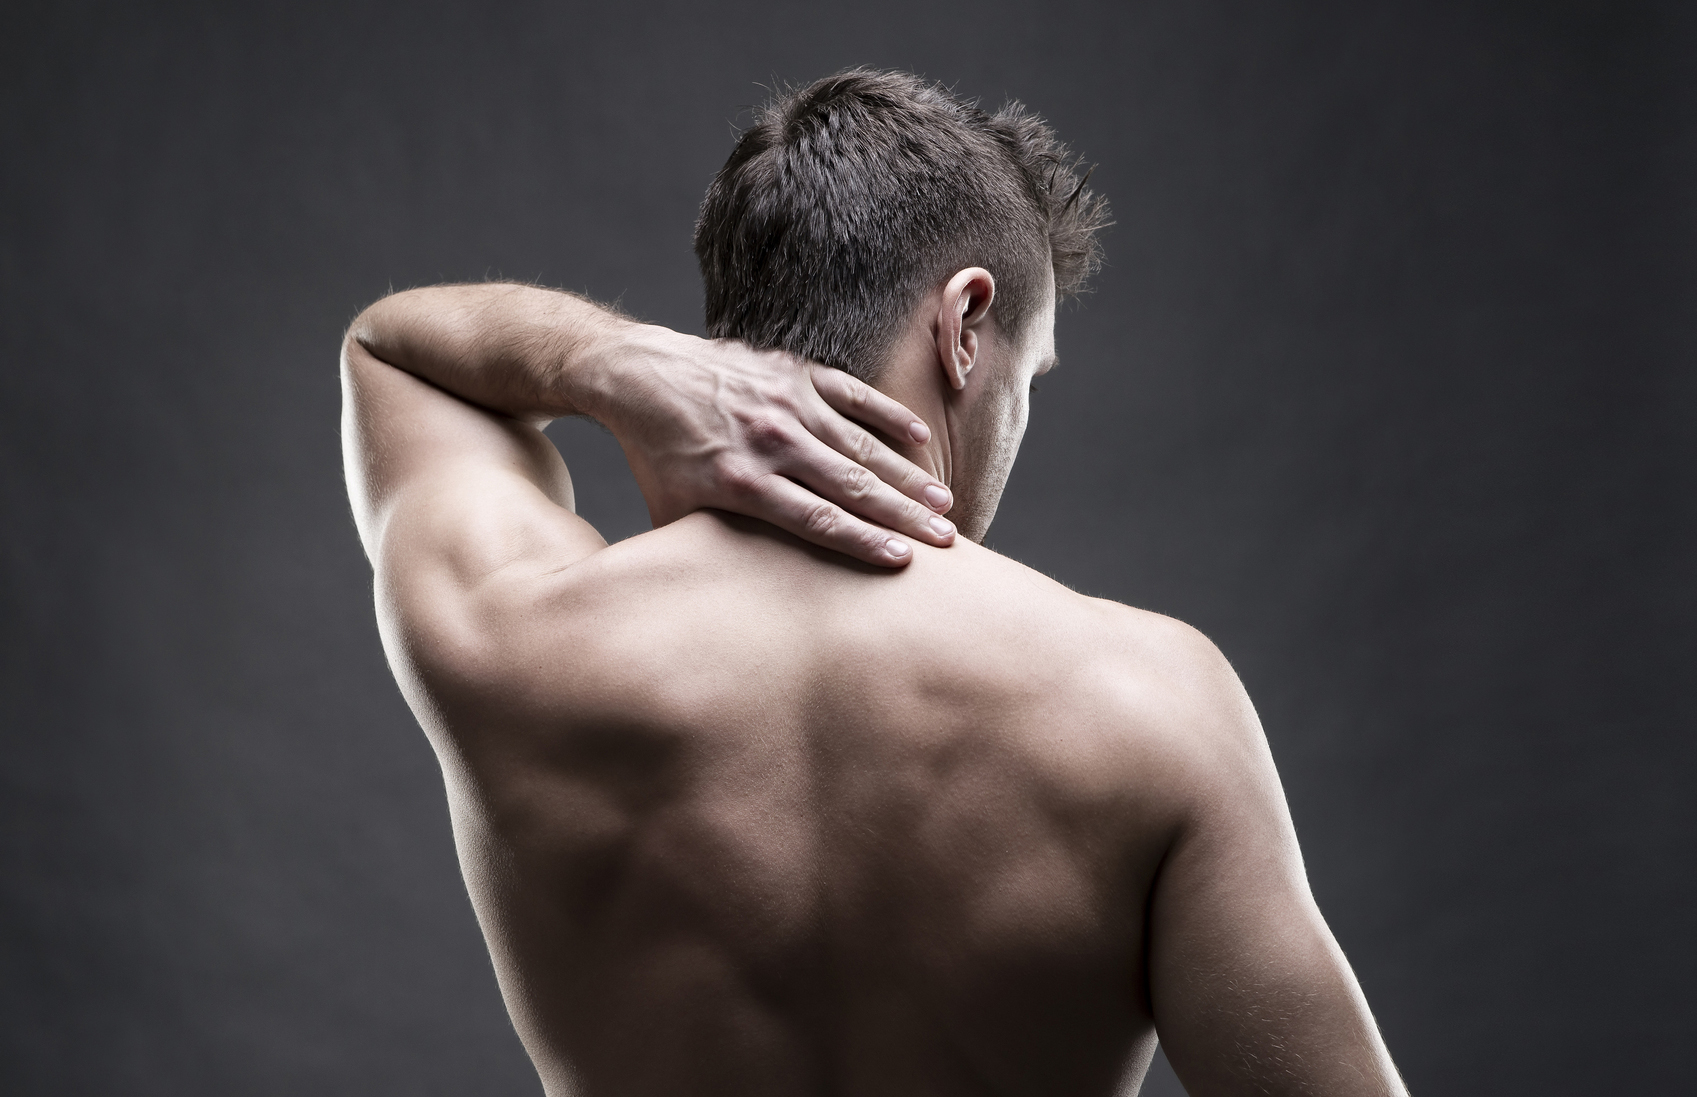 Muscle tension movements against headaches